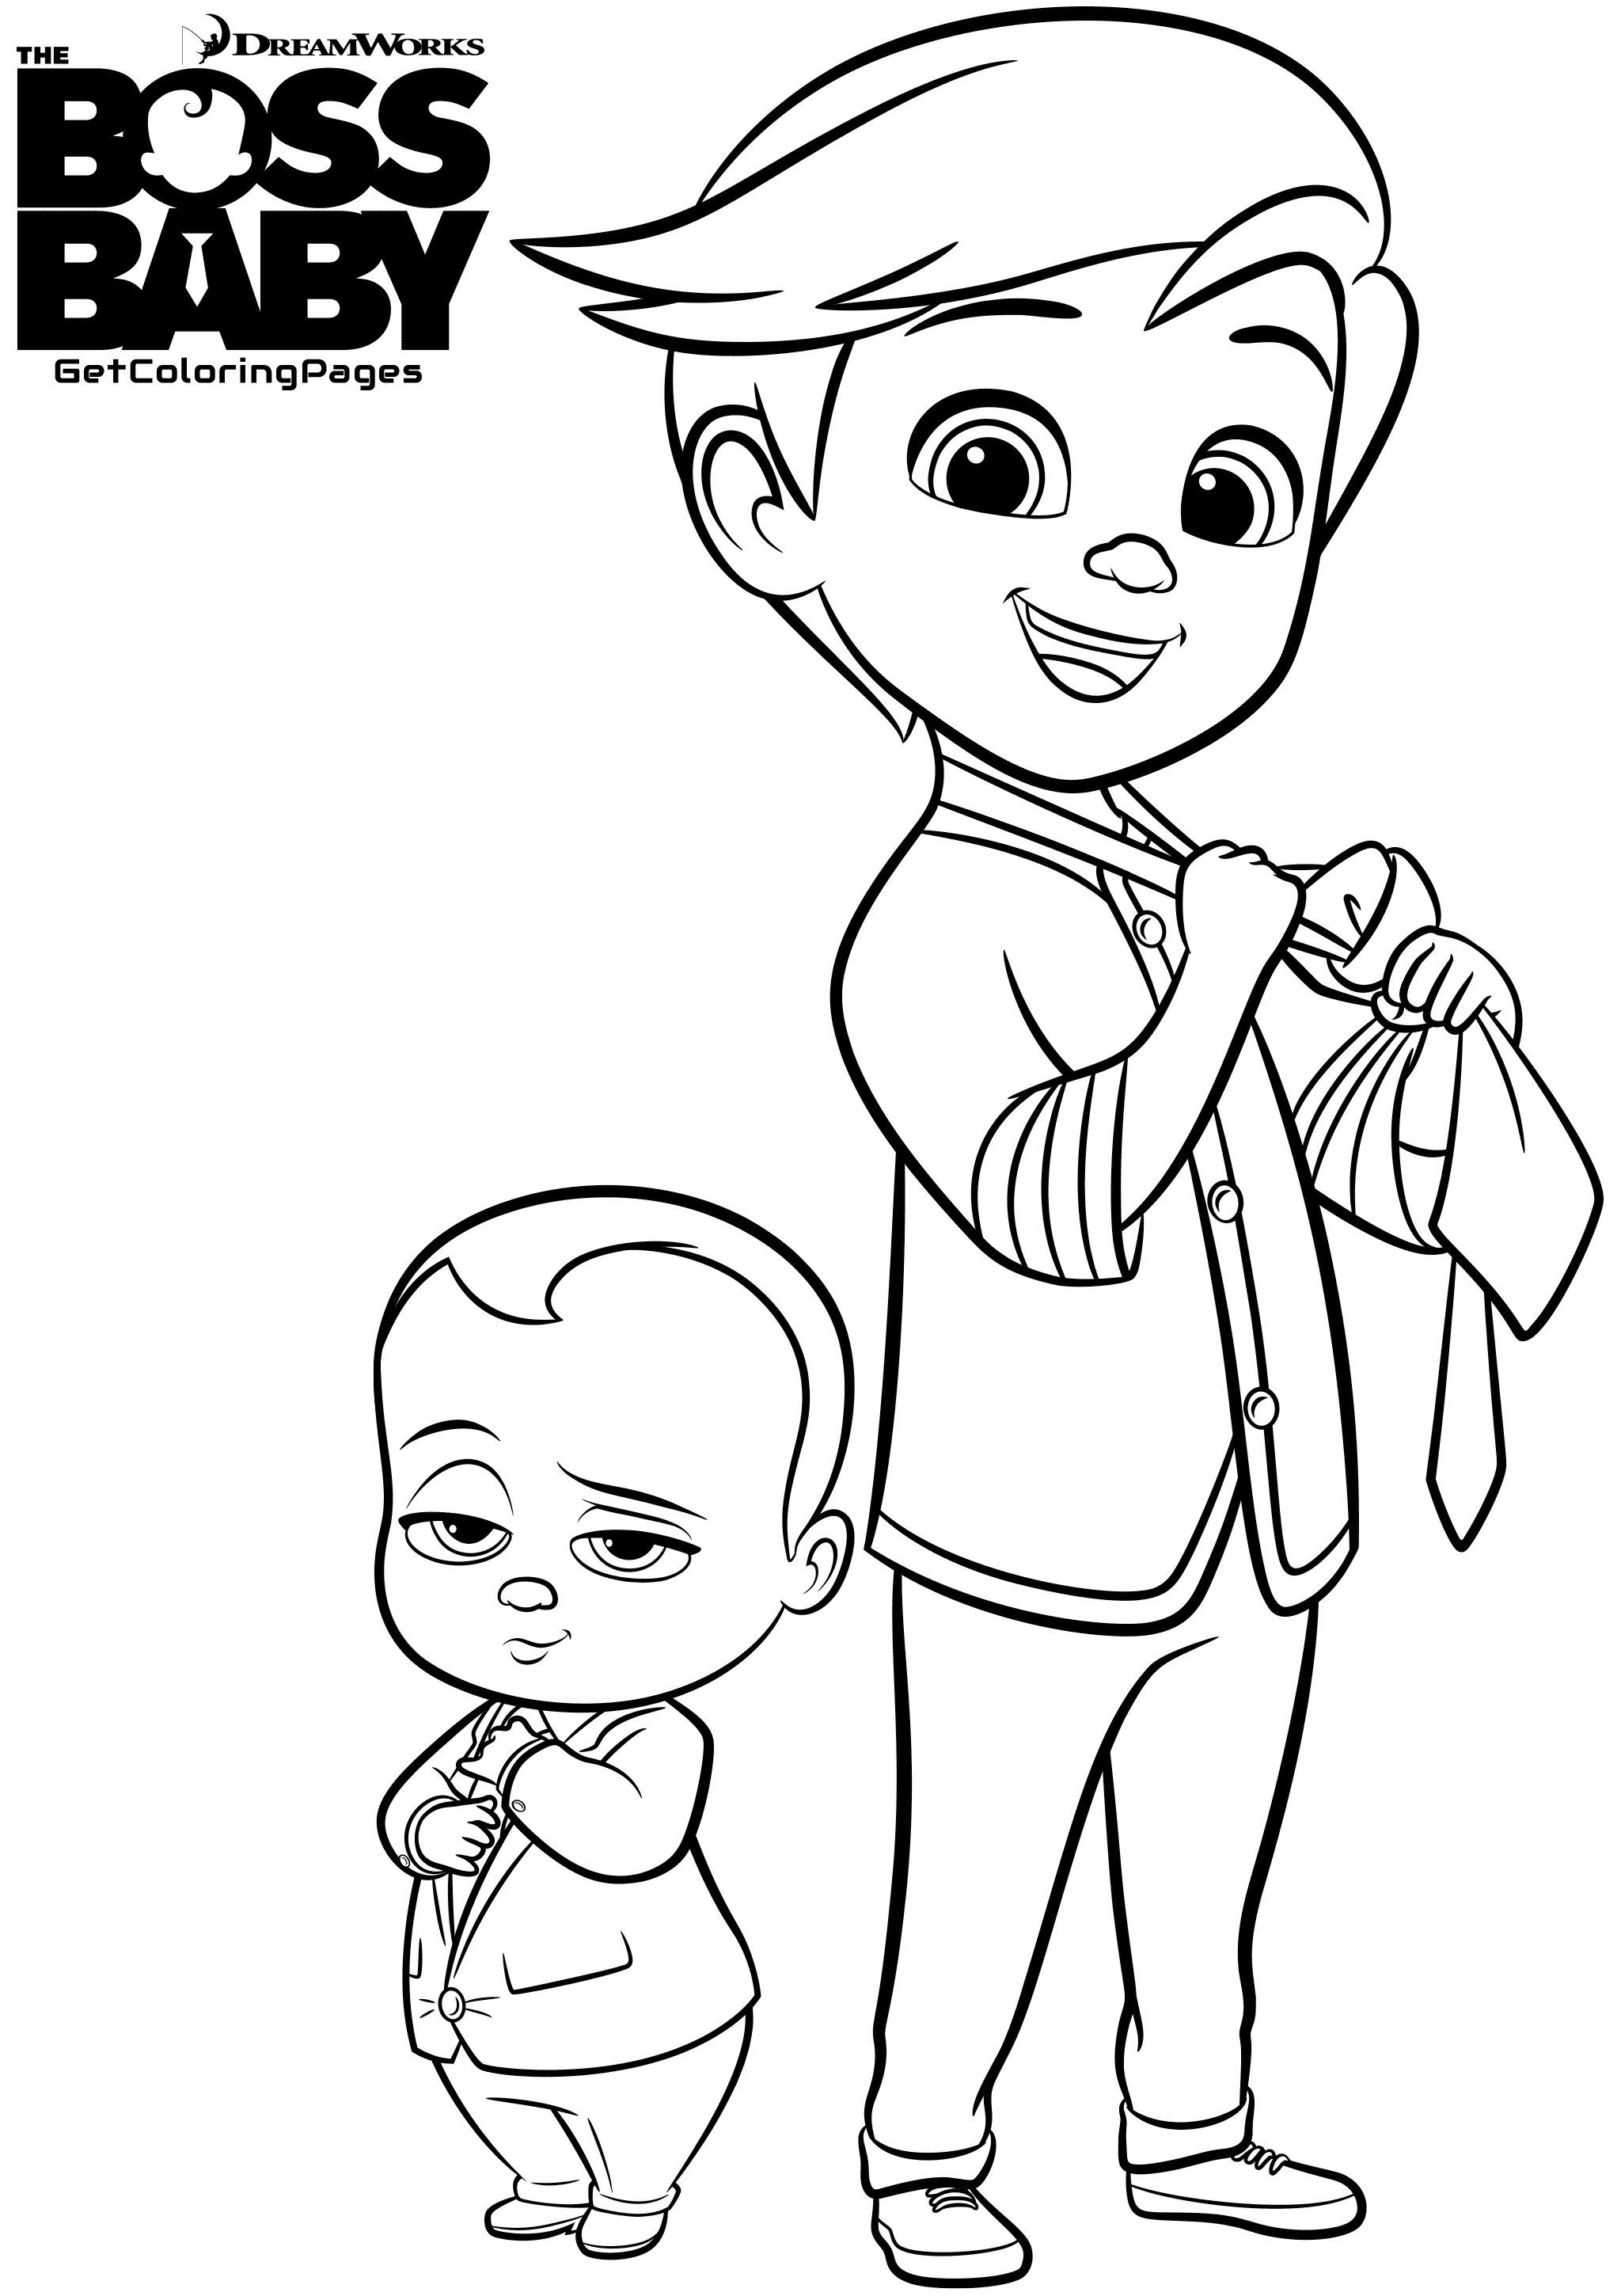 Baby boss to color for kids - Baby Boss - Free printable Coloring ...